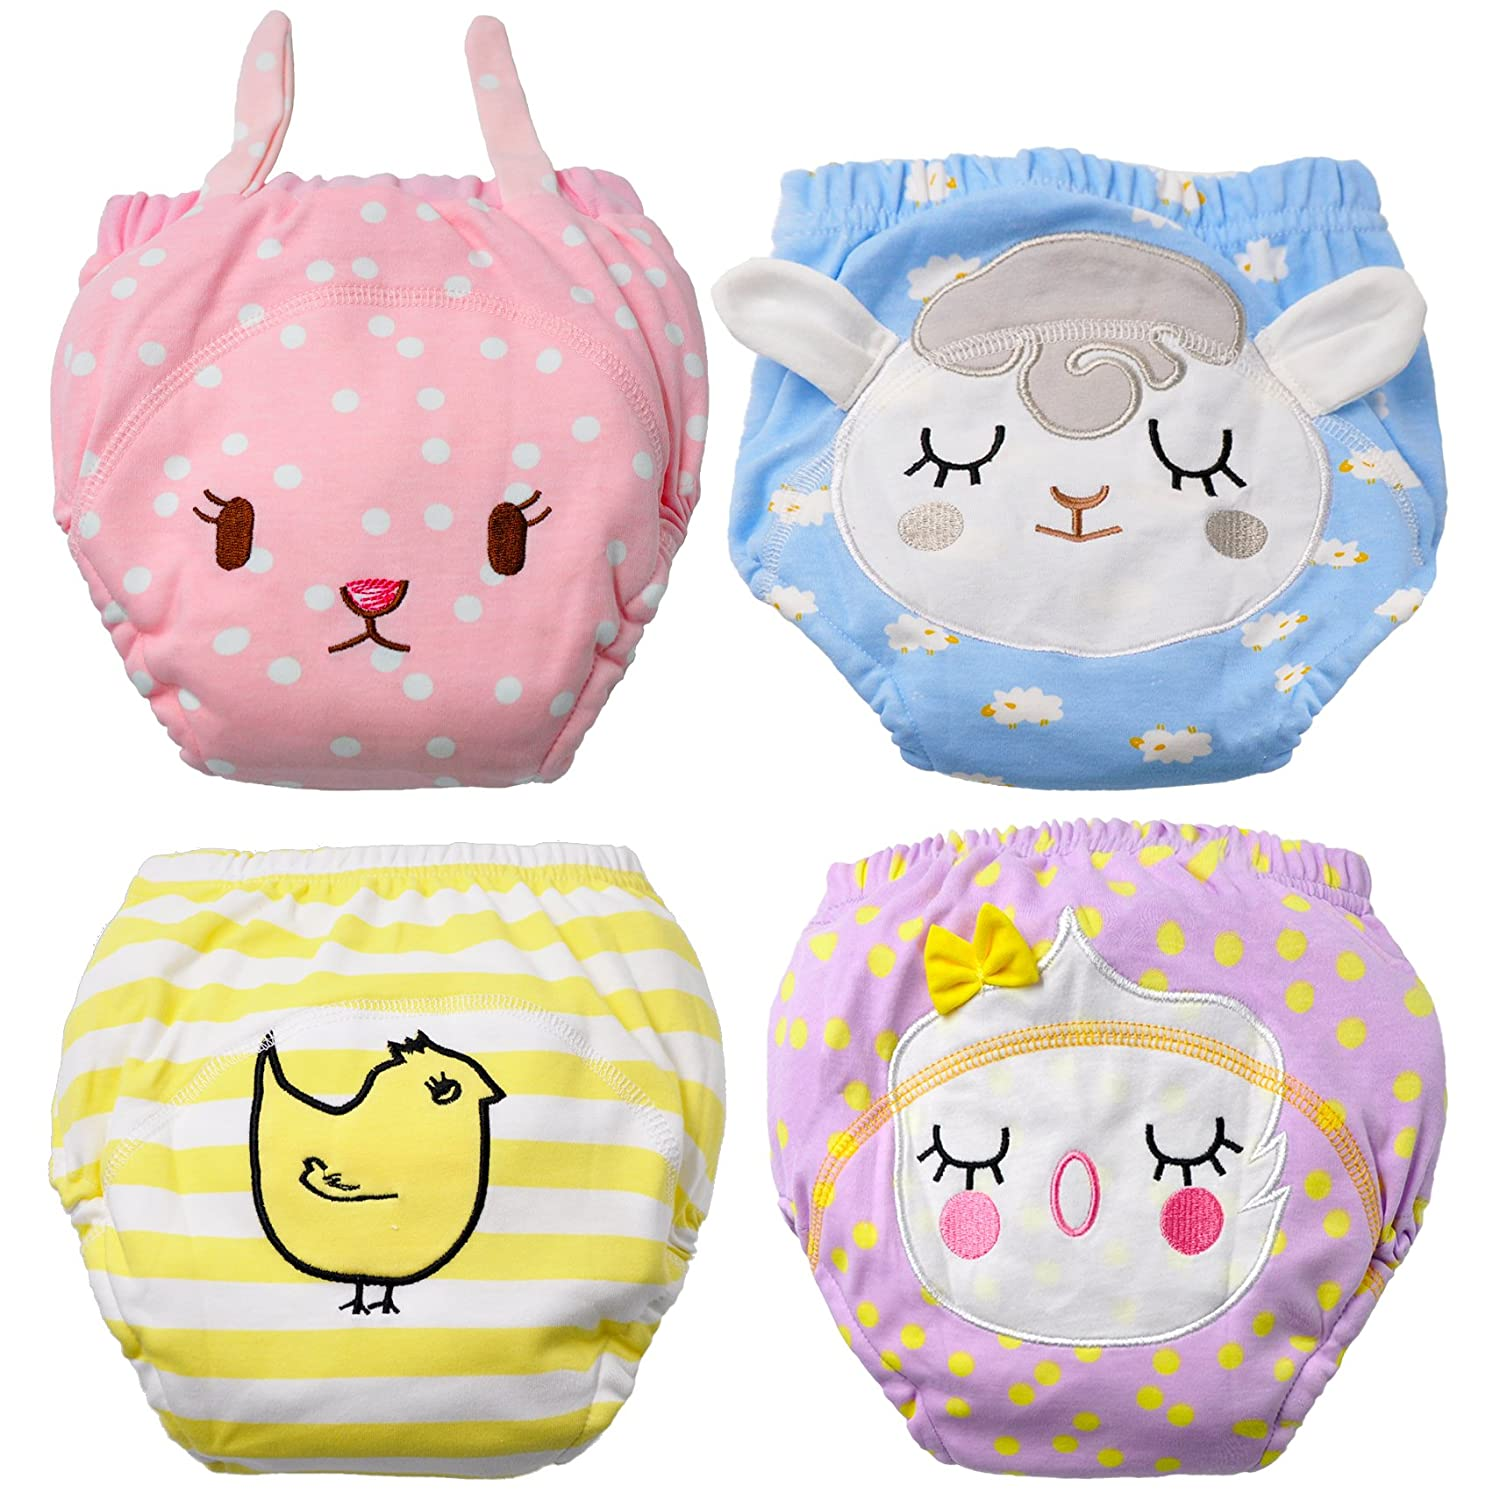 Baby Boy's Training Pants Toddler Potty Cotton Pants Cloth Diaper 4 Packs Cute Nappy Underwear for Kids Washable 3 Layers Potty Pants.(Bigger Than Normal Size, Suggest to Order Down a Size) MooMoo Baby